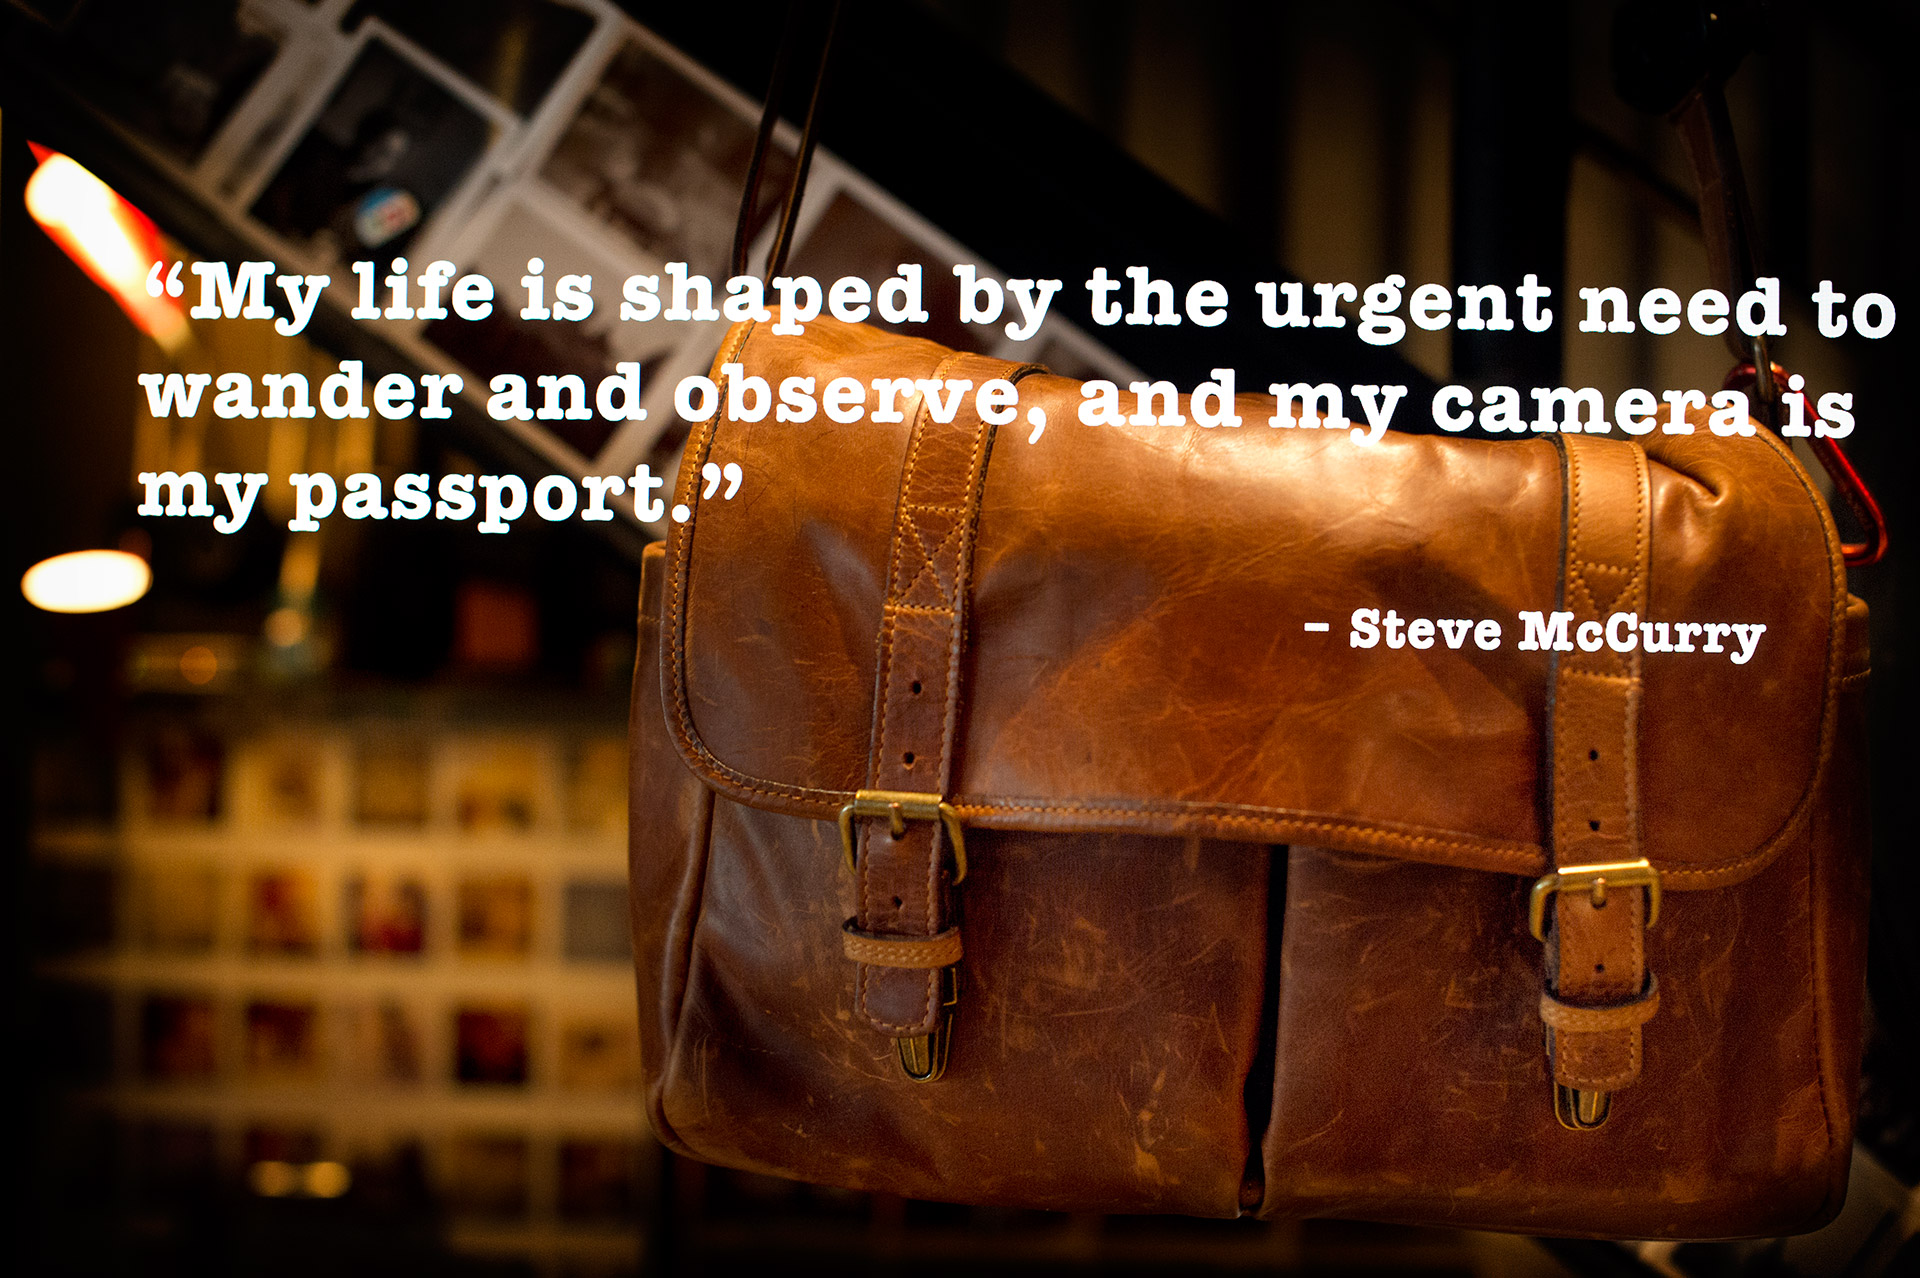 Multiple Exposure Camera Quote – Steve McCurry